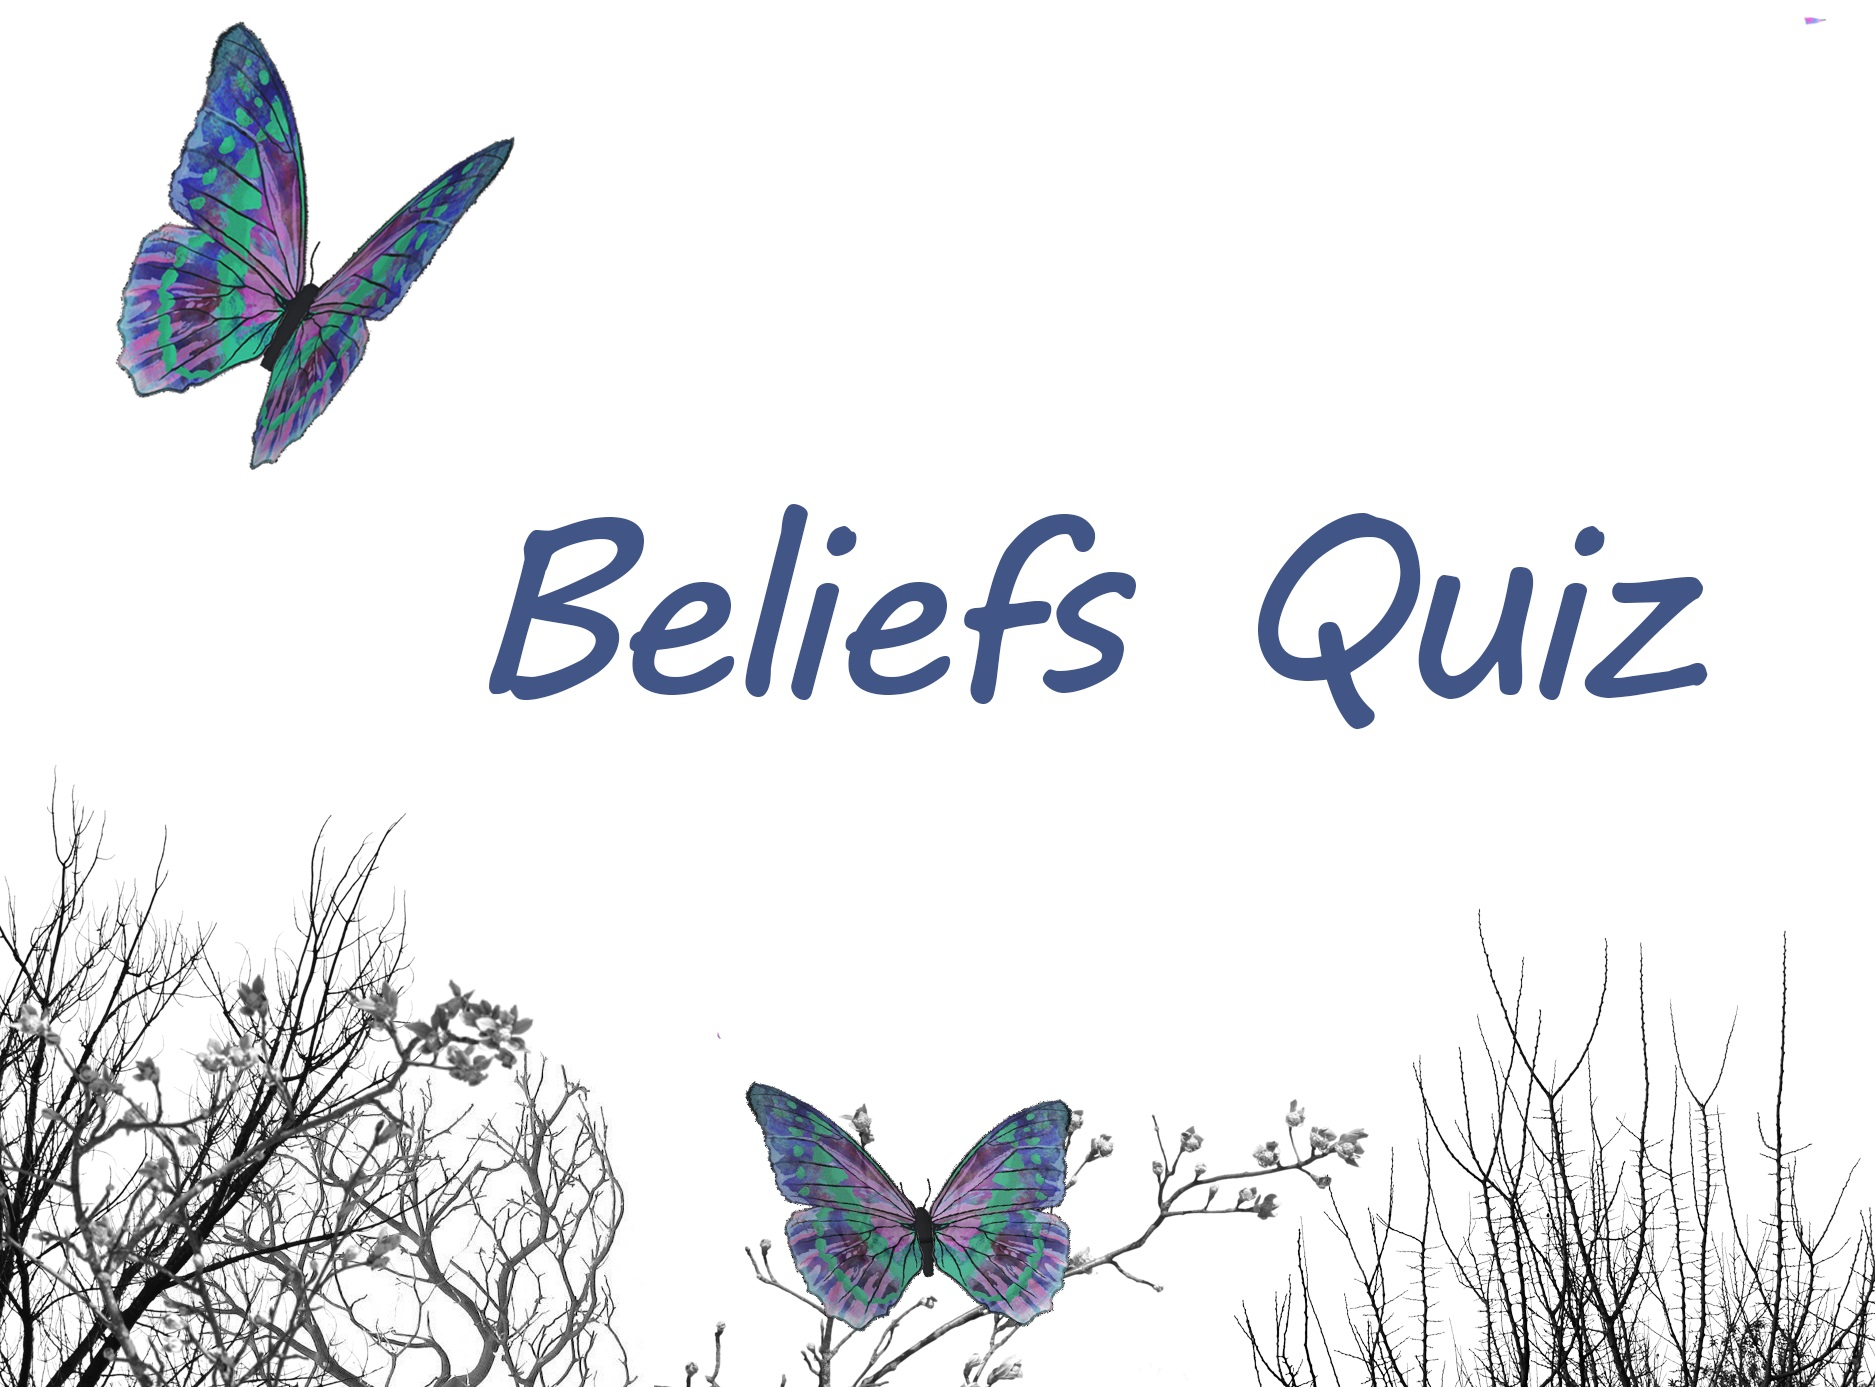 The Beliefs Quiz